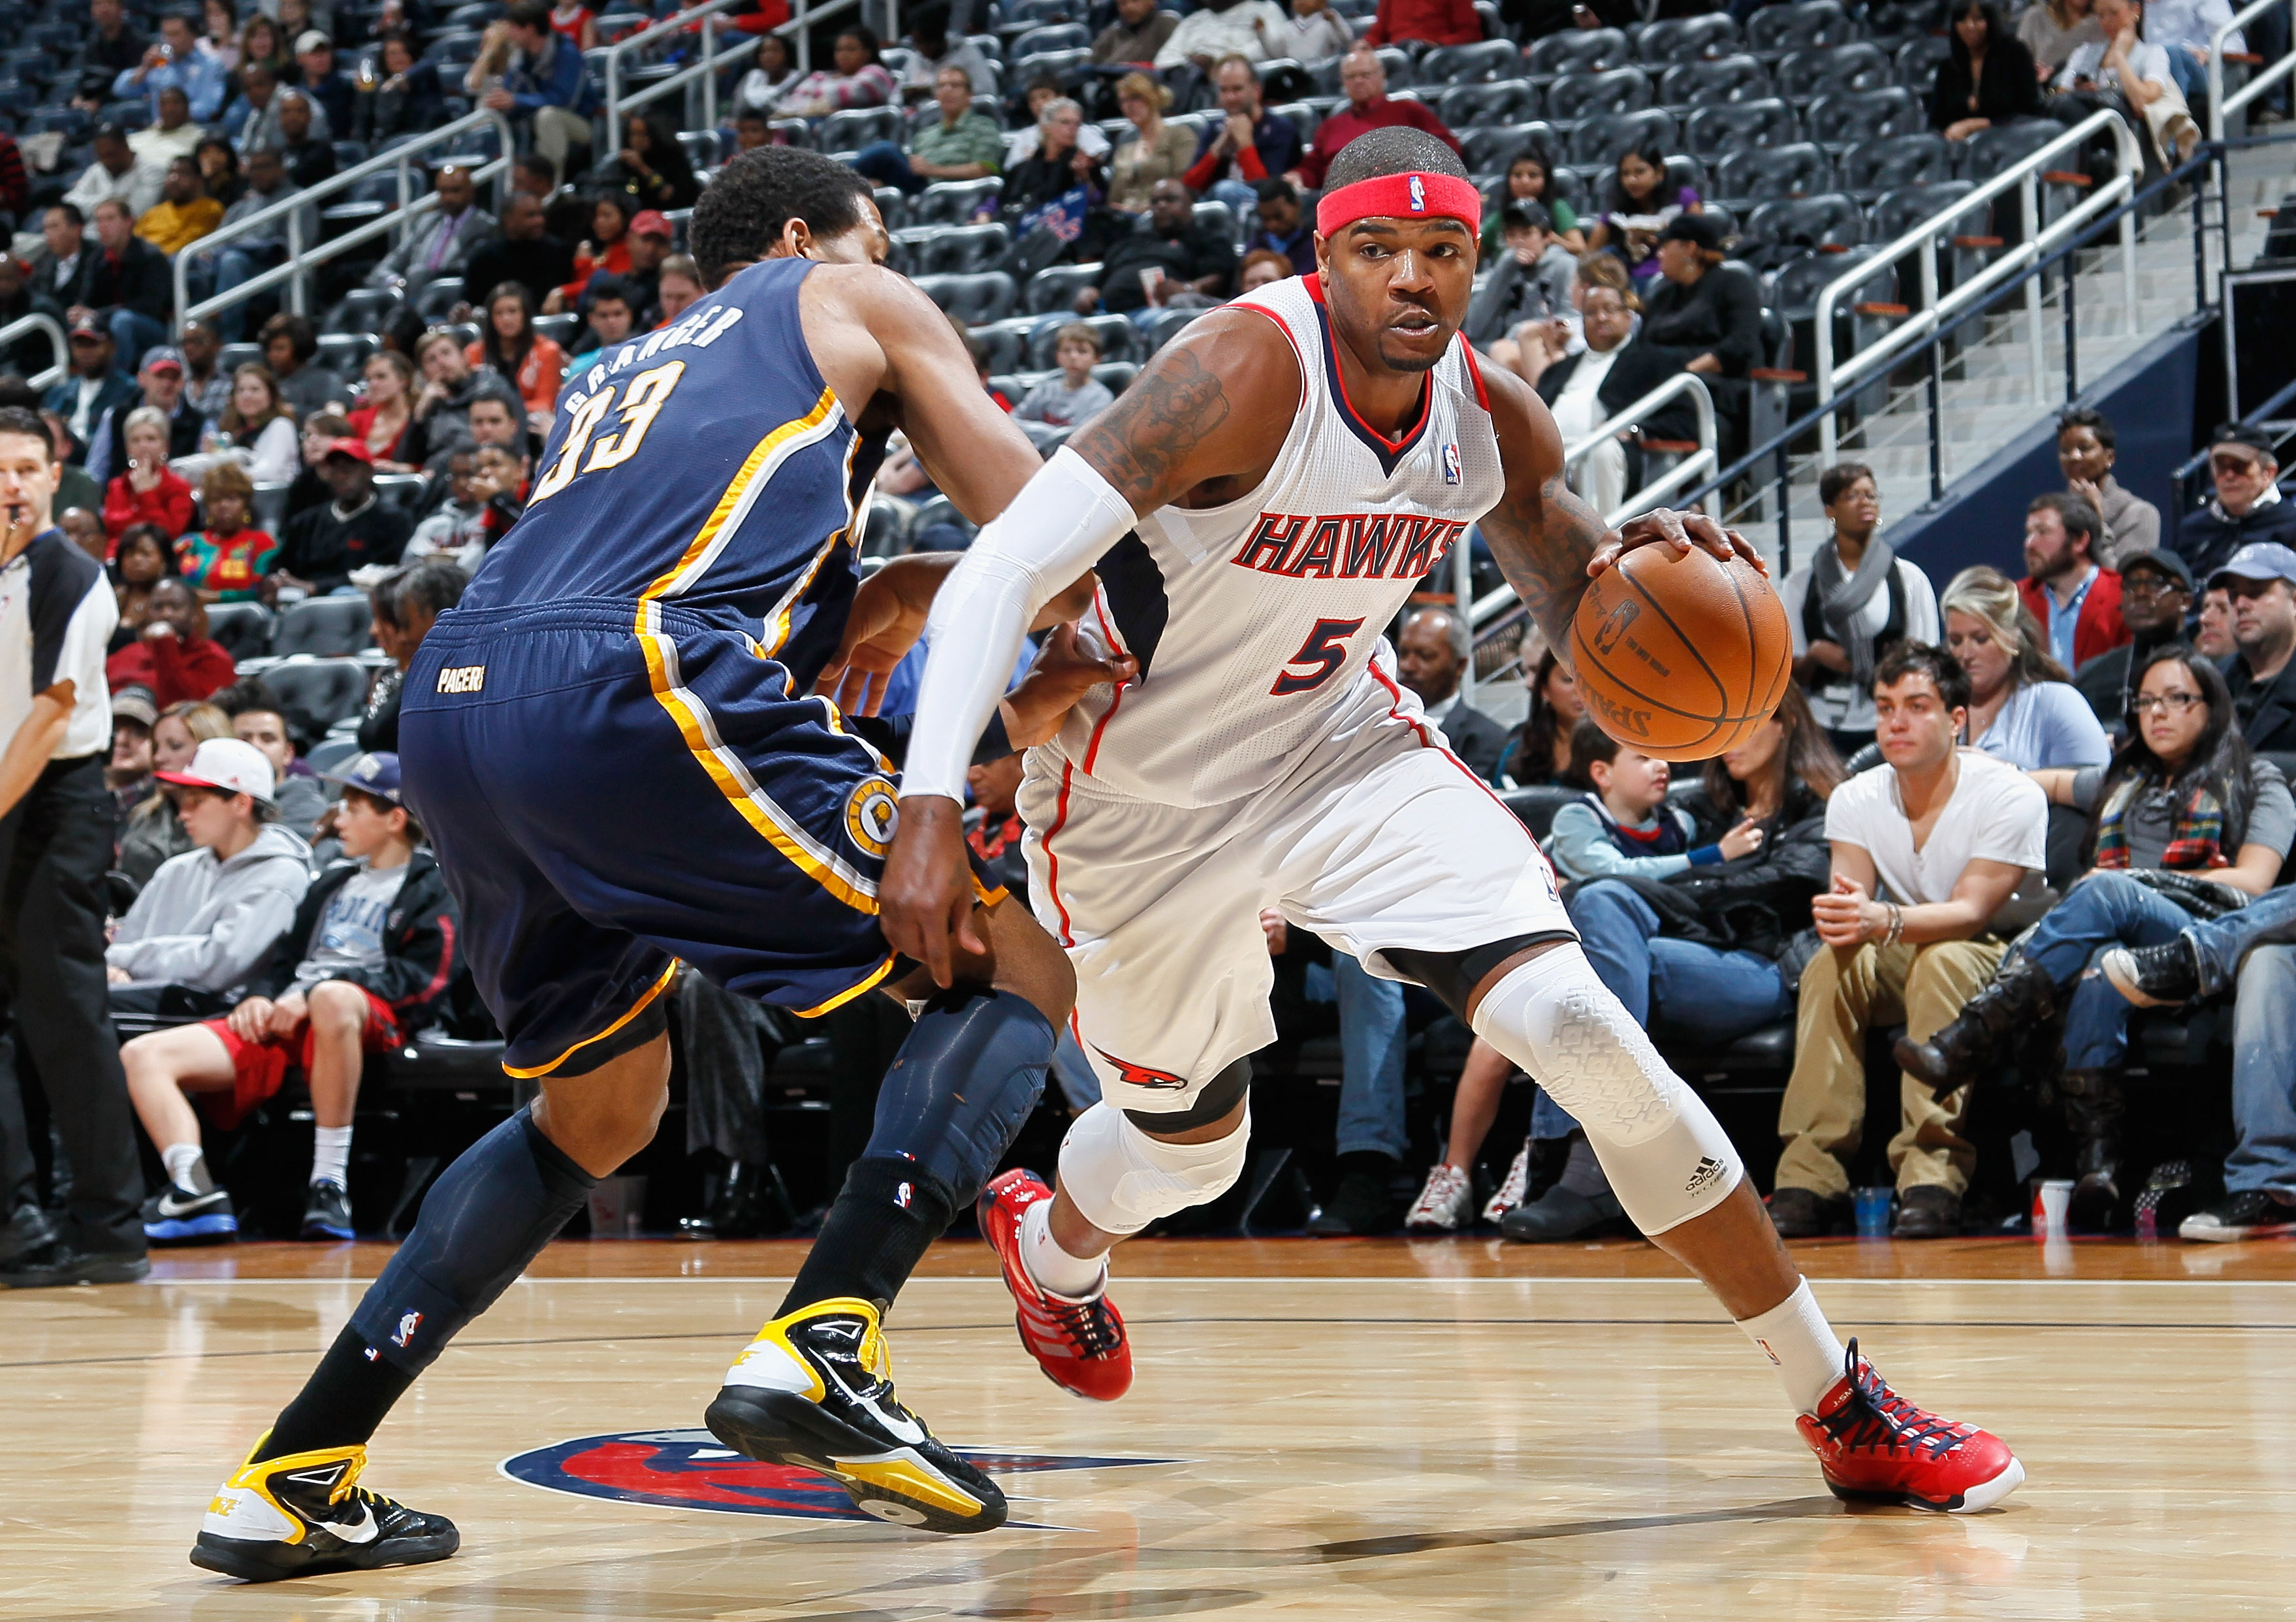 ATLANTA, GA - DECEMBER 11:  Josh Smith #5 of the Atlanta Hawks against Danny Granger #33 of the Indiana Pacers at Philips Arena on December 11, 2010 in Atlanta, Georgia.  NOTE TO USER: User expressly acknowledges and agrees that, by downloading and/or usi